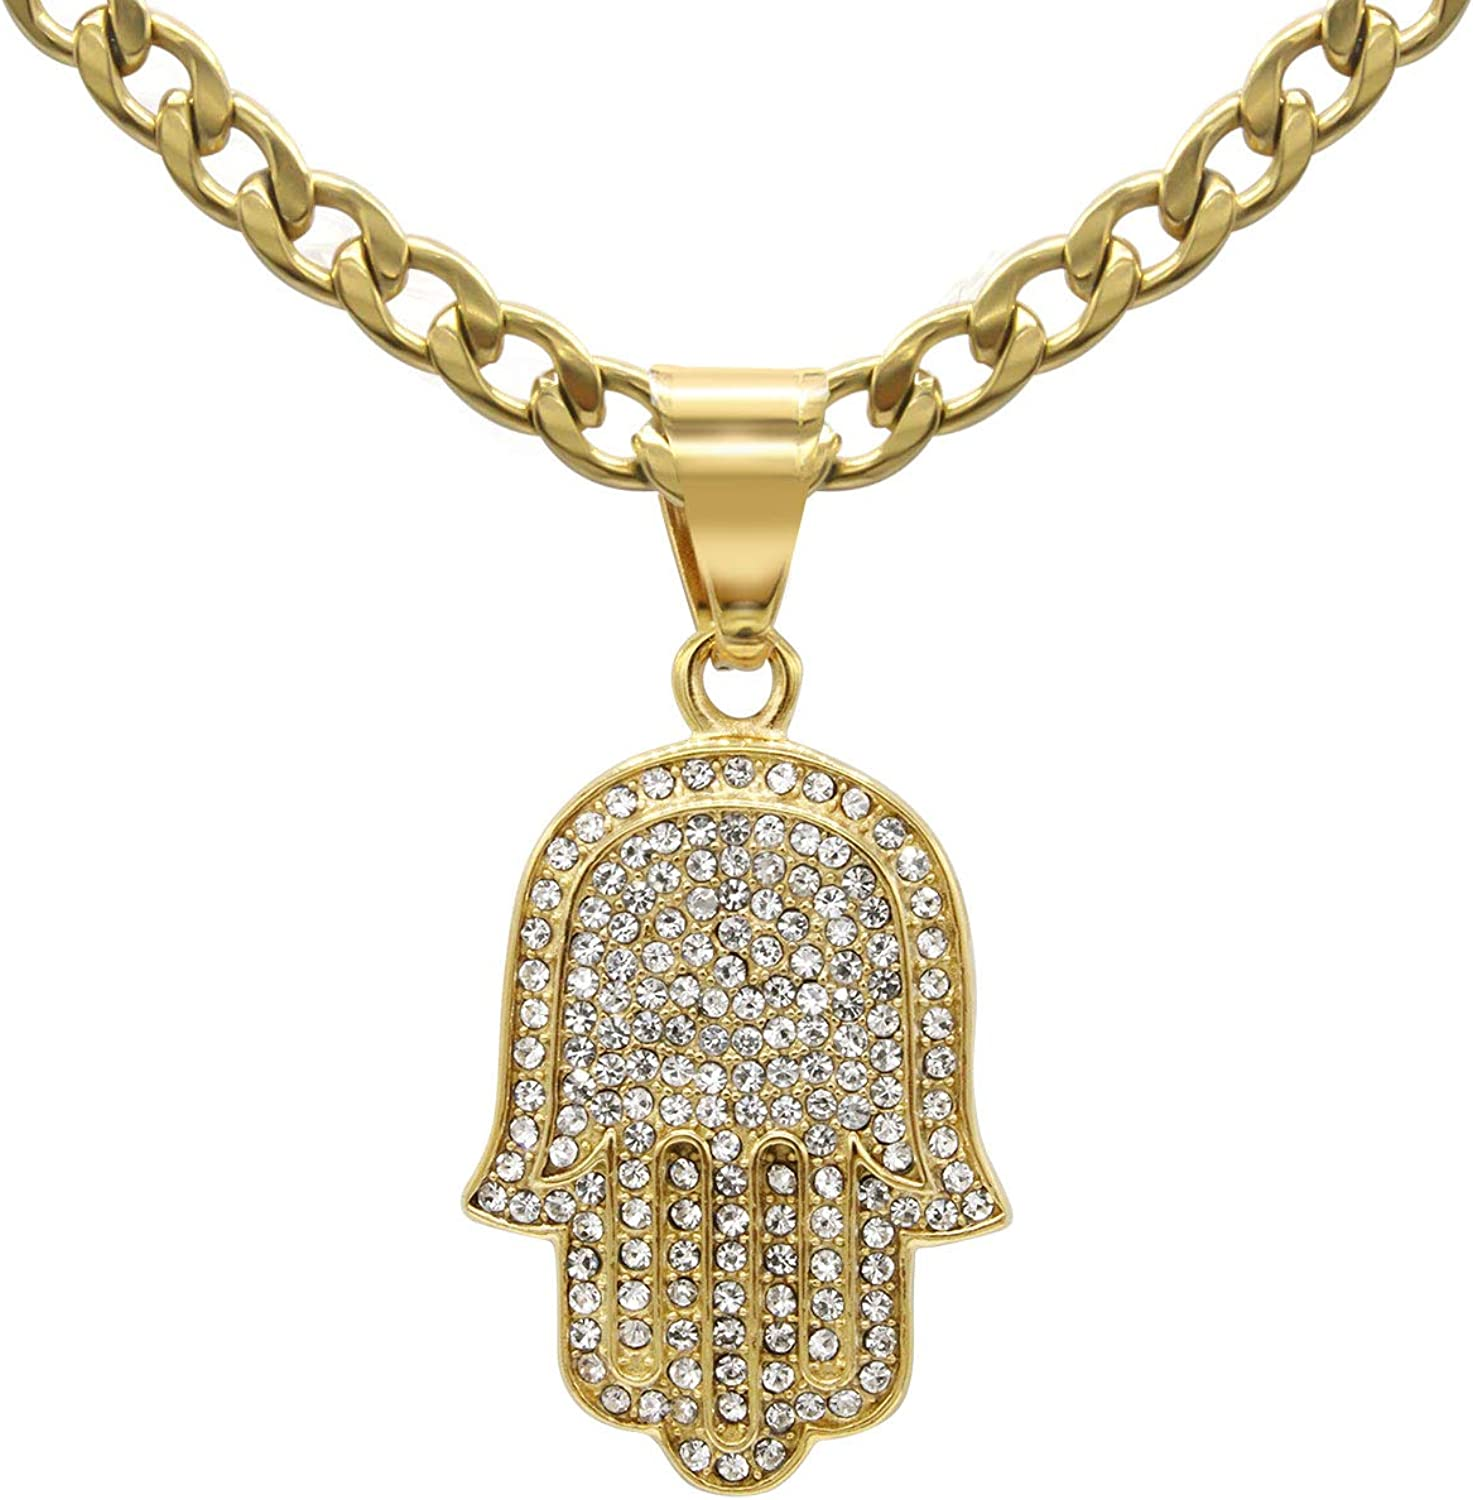 BEBERLINI Hamsa Hand CZ Pendant Necklace Set Gold Silver Stainless Steel Box Cuban Chain Lobster Clasp Cubic Zirconia Charm Fashion Jewelry for Men